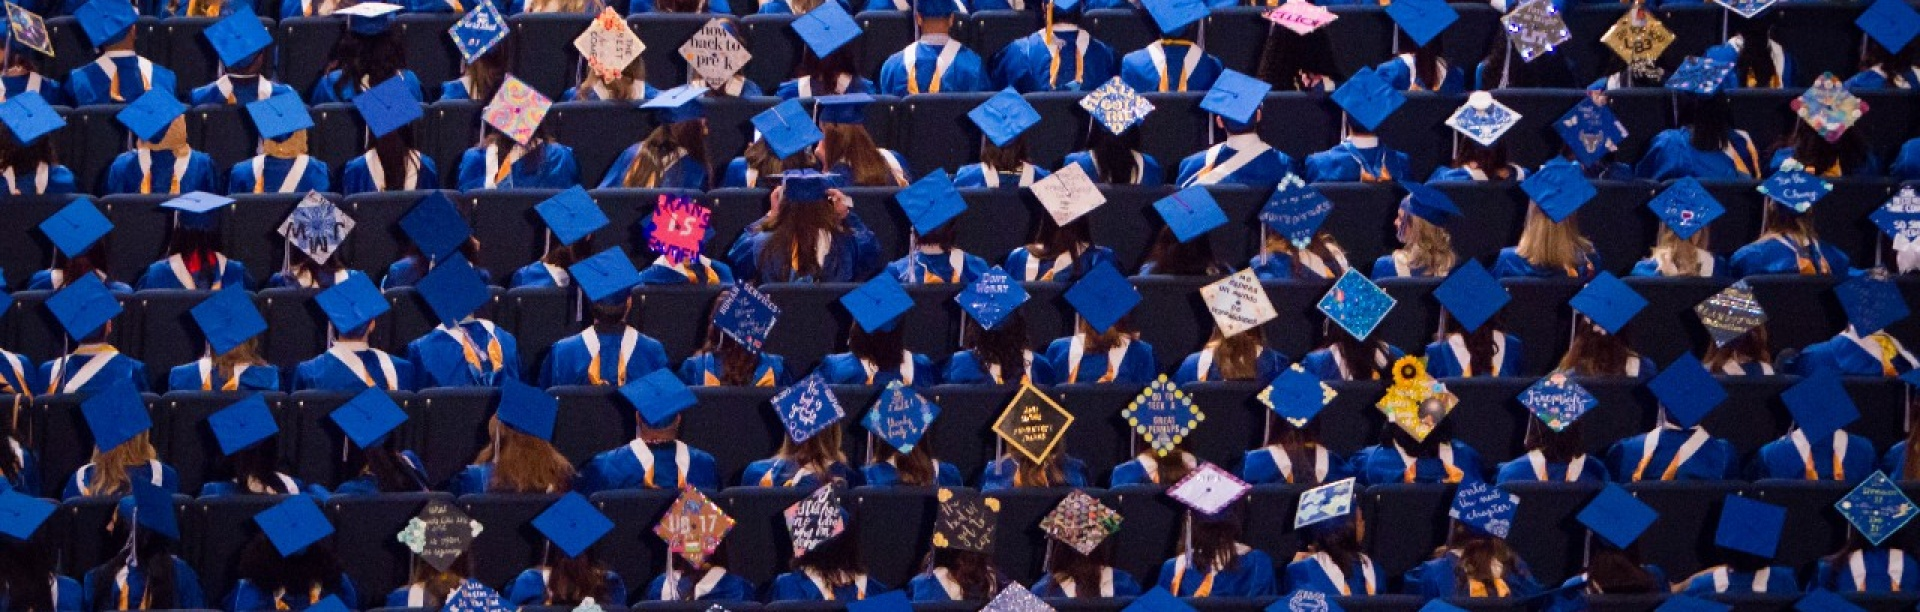 a sea of graduation caps, from above.